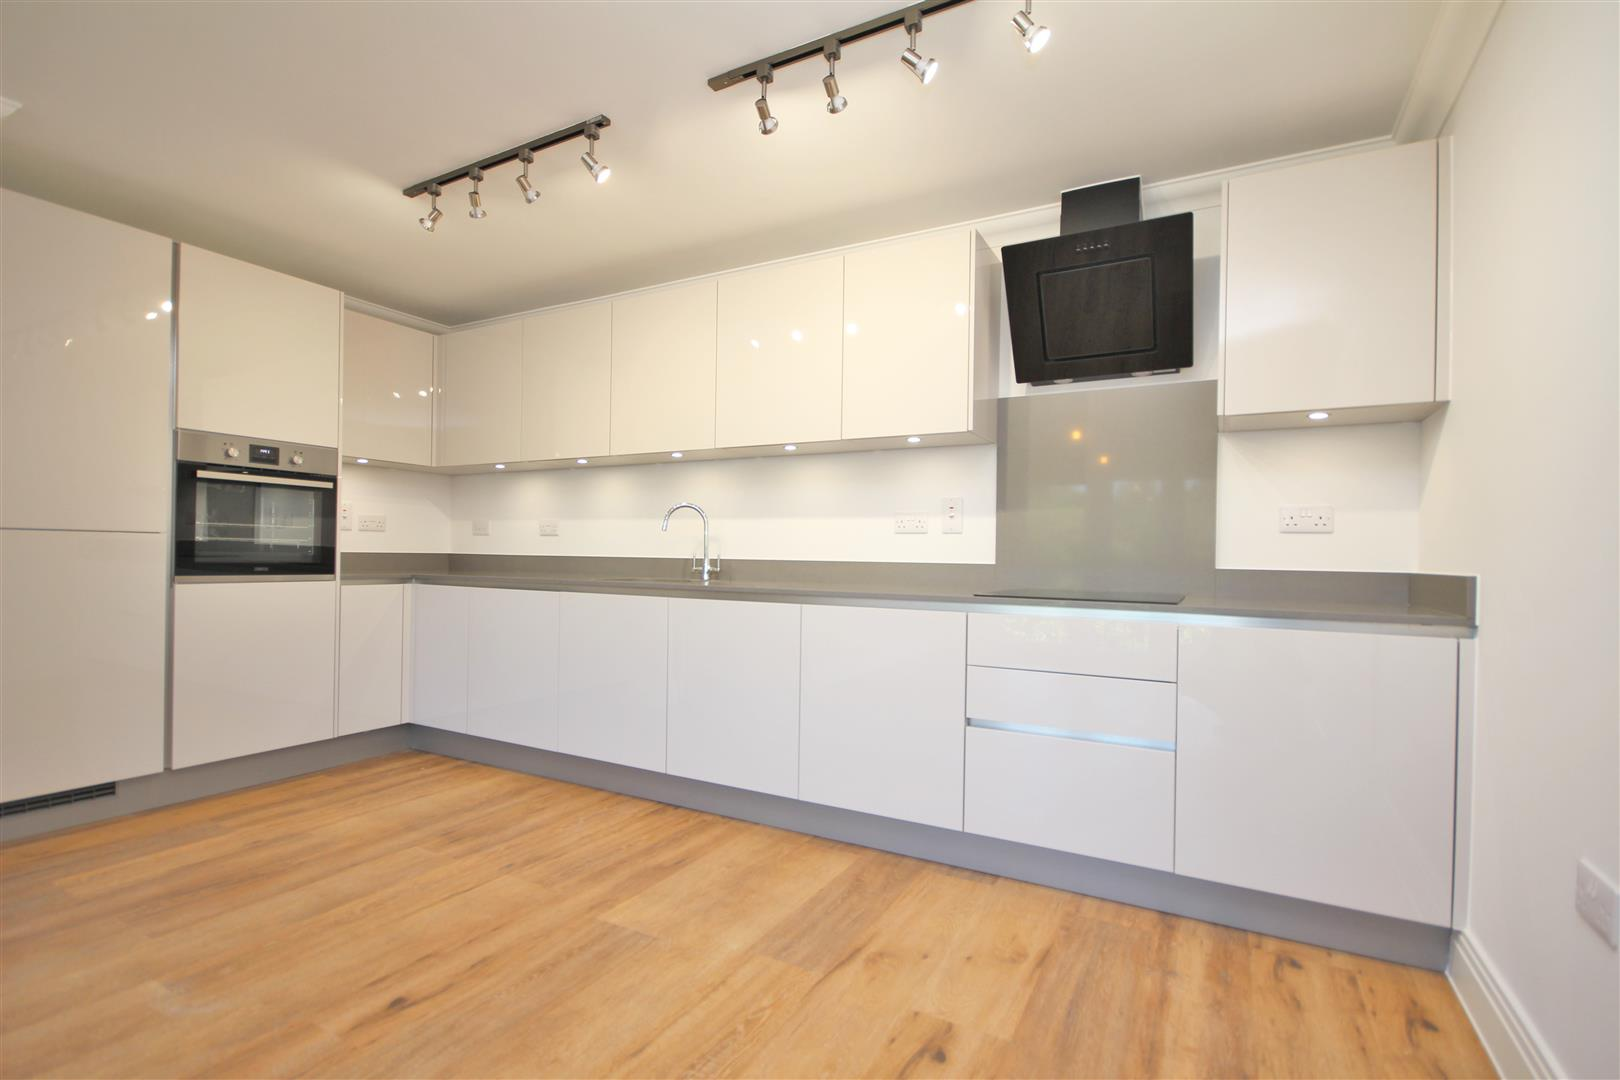 2 bed Flat to rent - (Property Image 1)